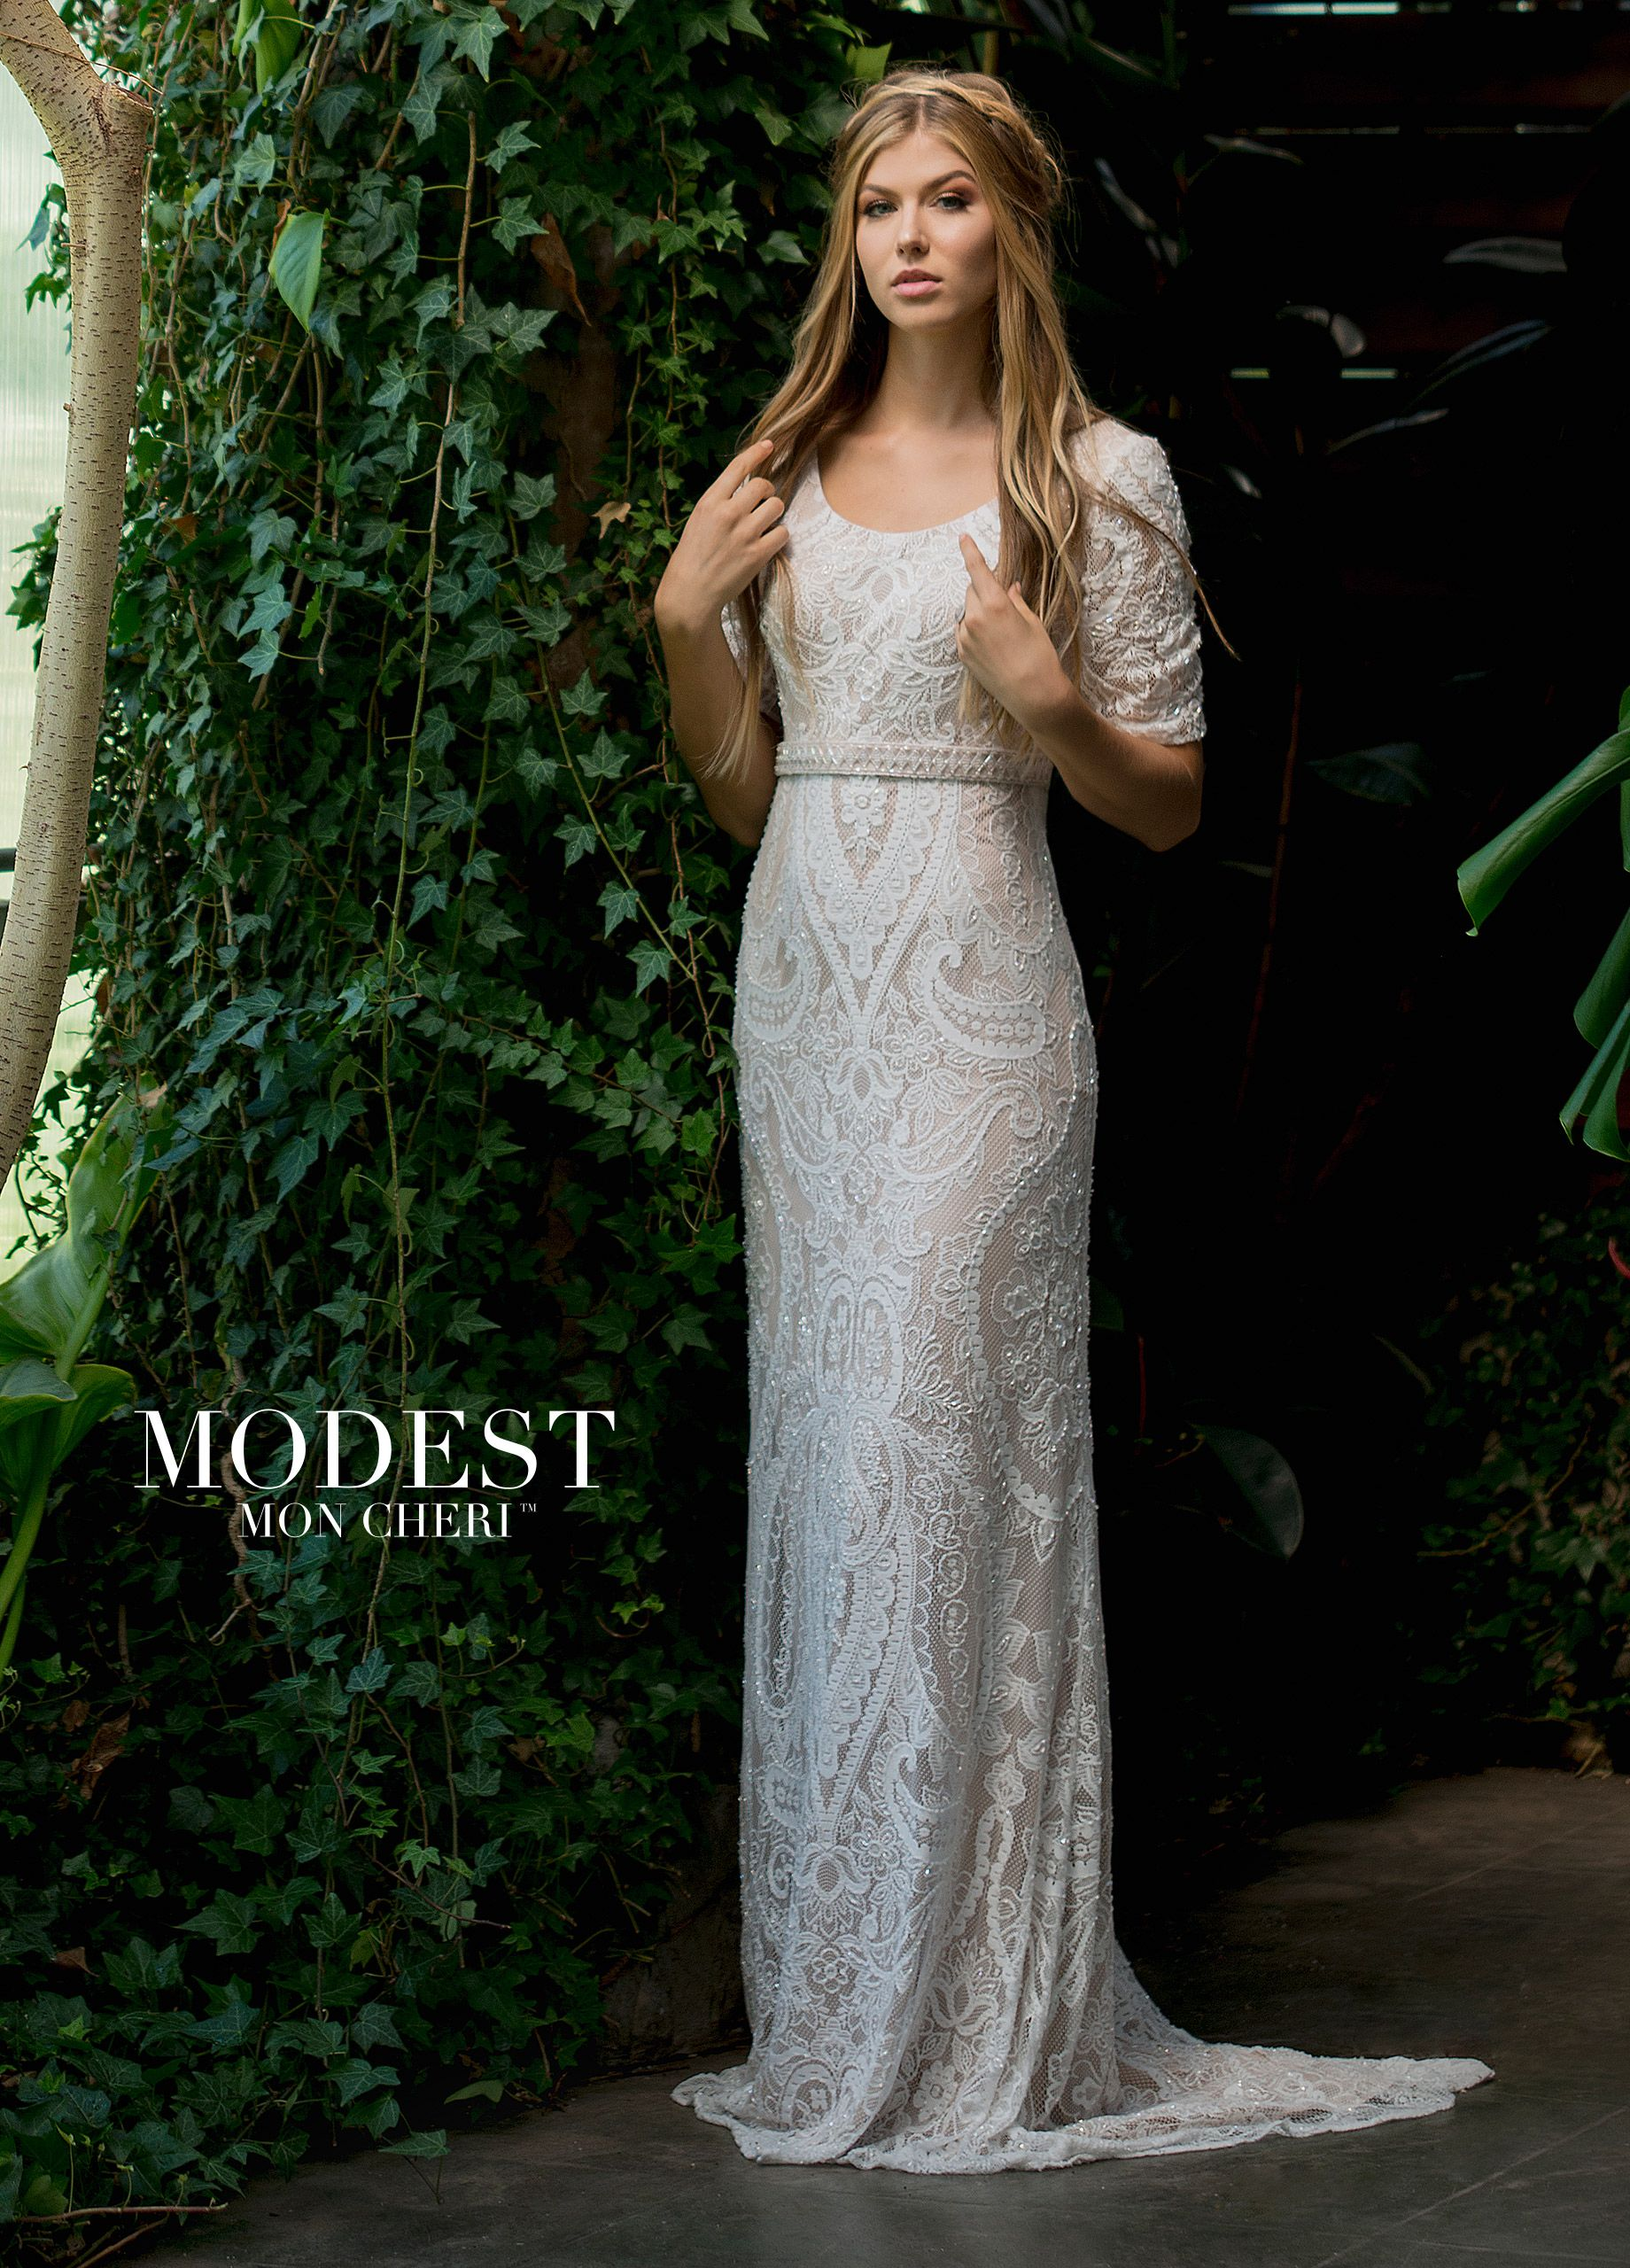 c99c3464c4c9 Modest Wedding Dresses TR11833 - Soft allover embroidered and beaded lace  sheath with elbow-length sleeves, scoop neckline, center back hidden  zipper, ...